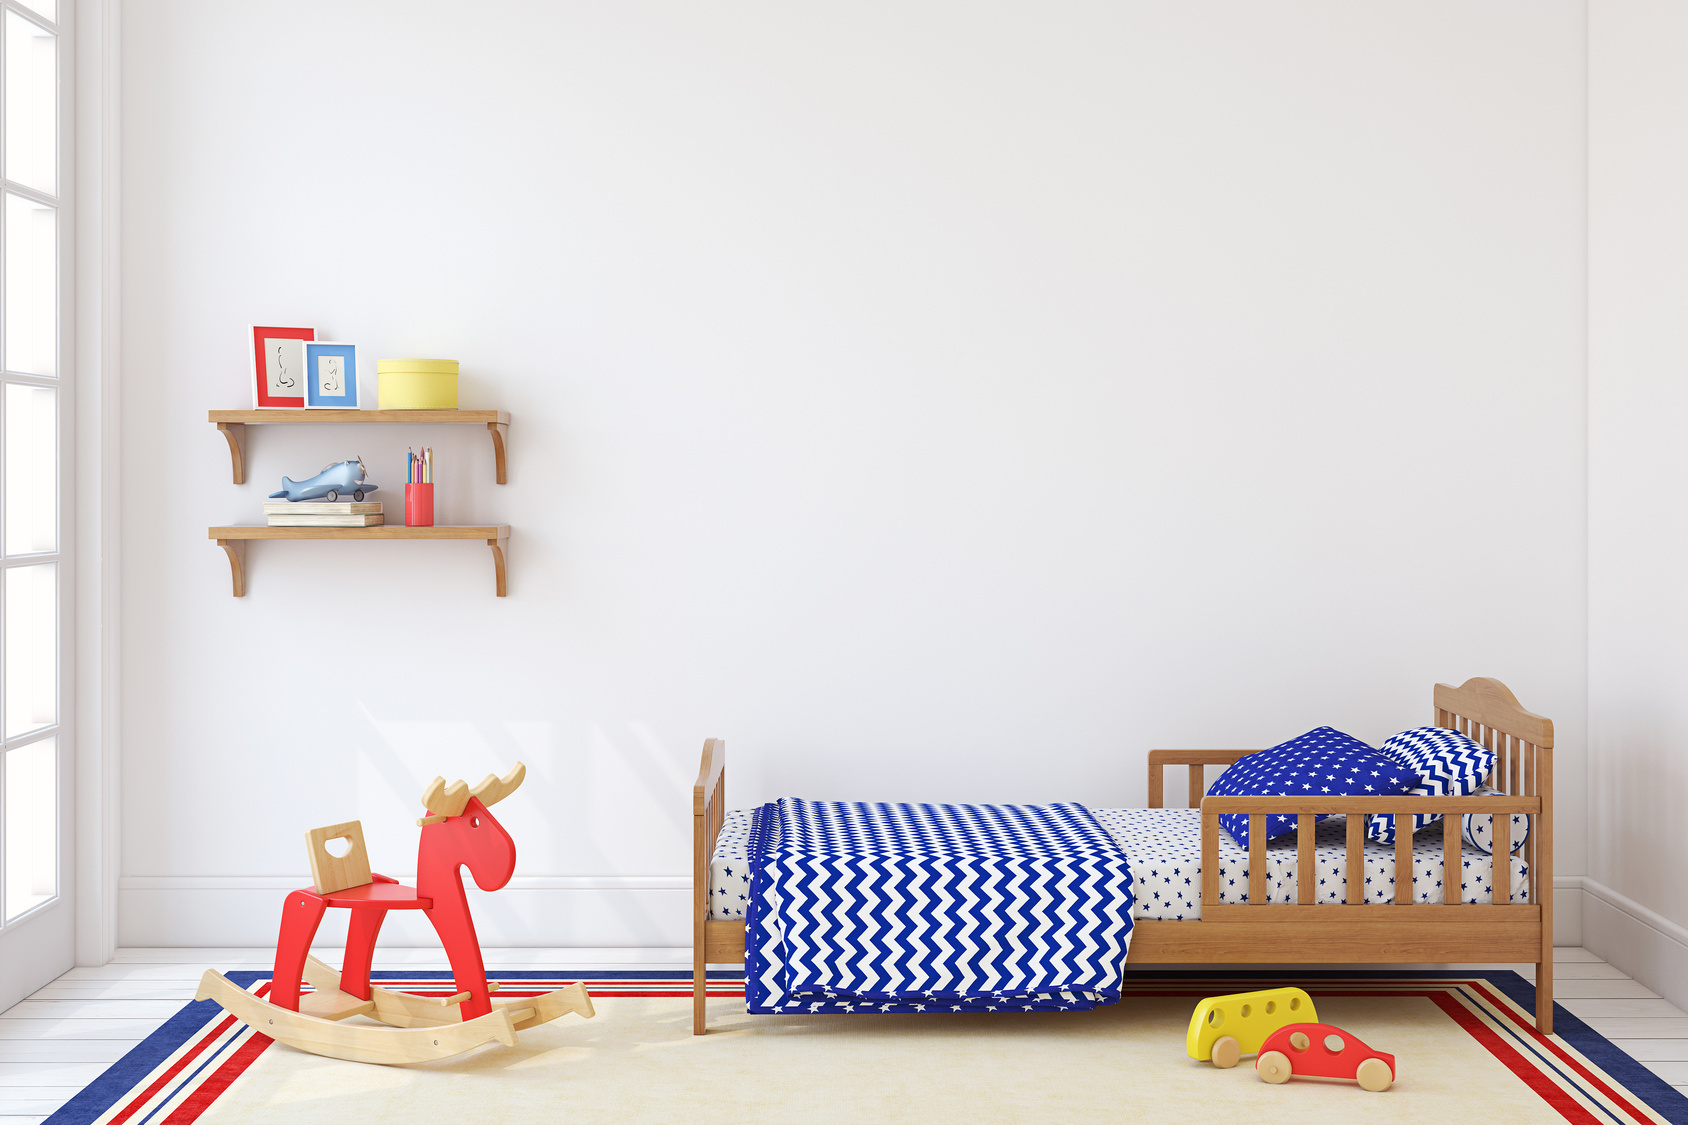 Reorganizing Room: How To Reorganize Your Child's Room After A Move To Stay